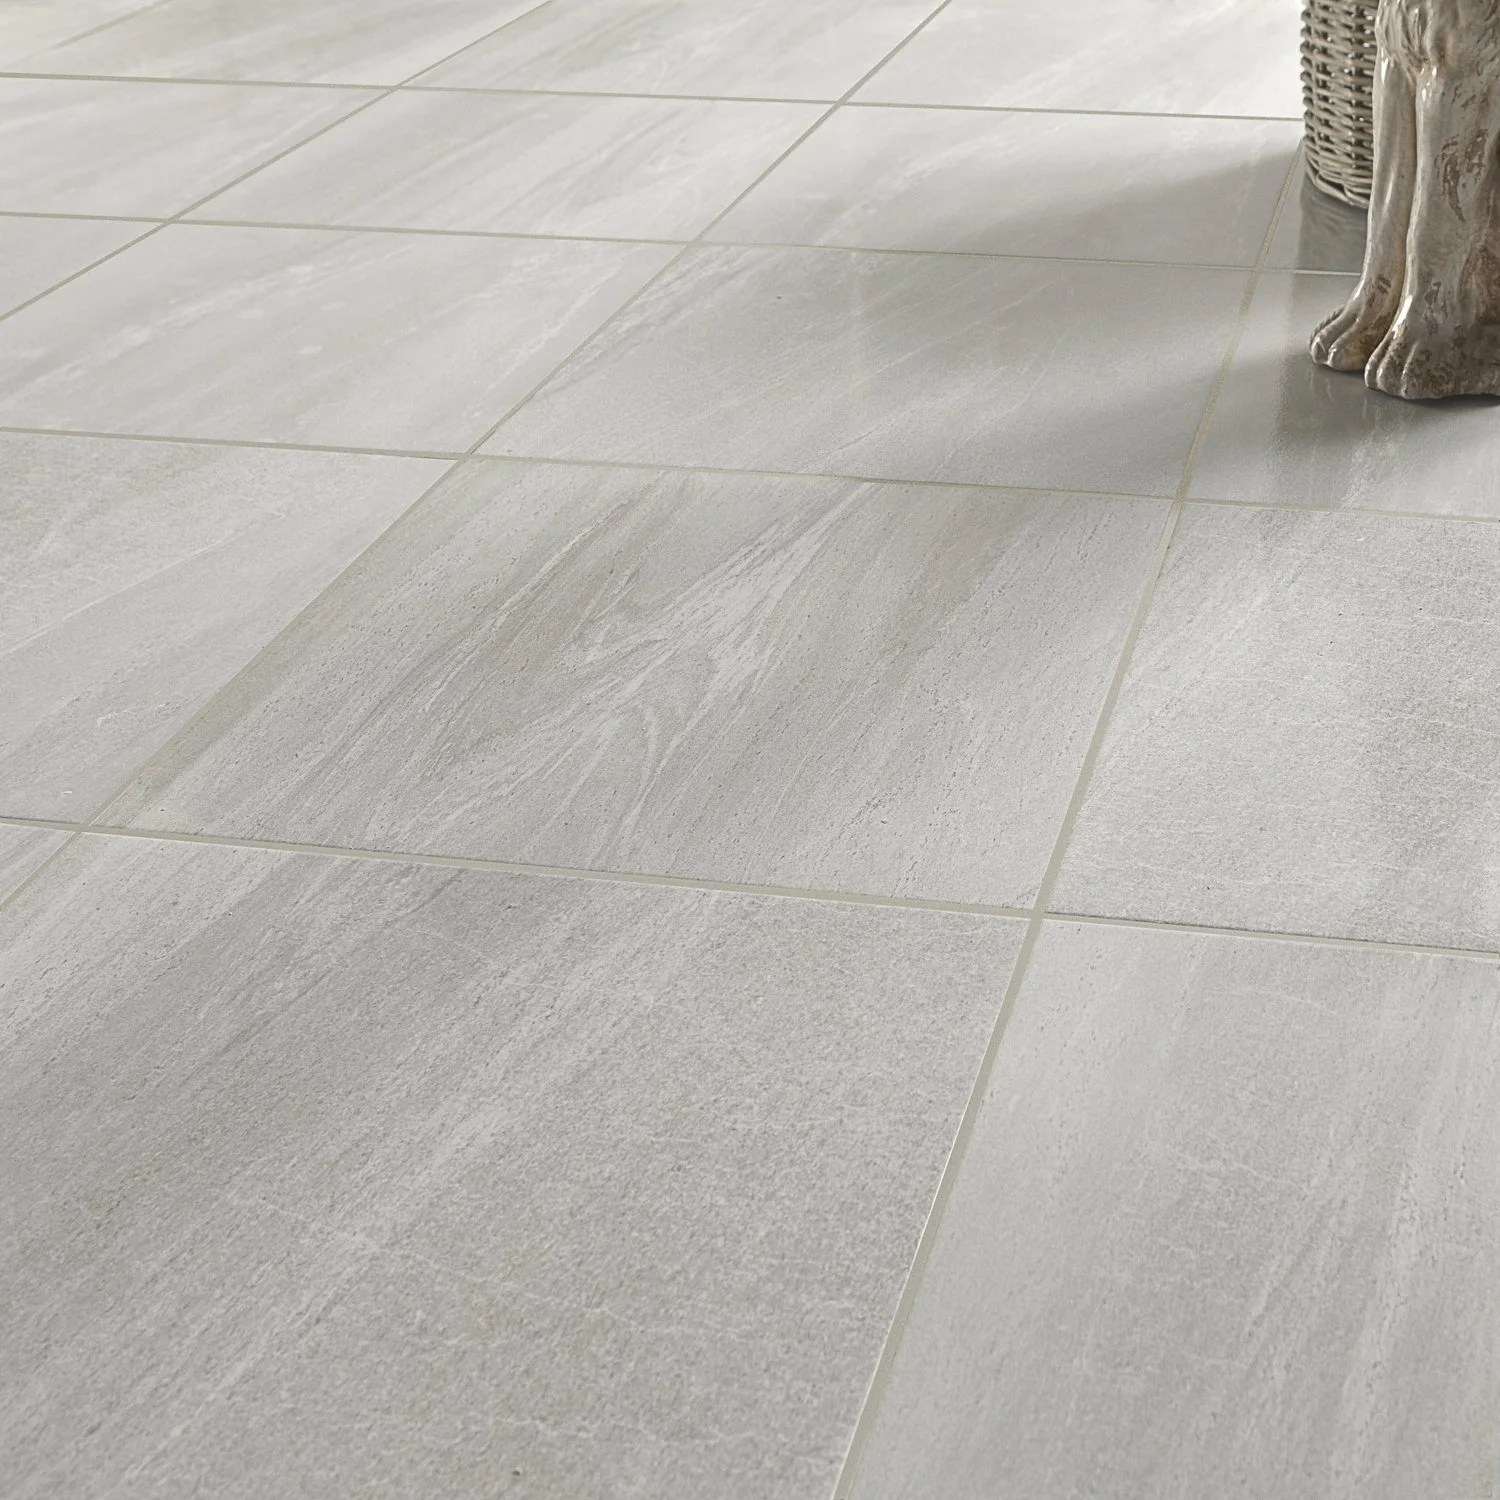 Joint Silicone Lino Un Carrelage Carré Gris Clair Leroy Merlin